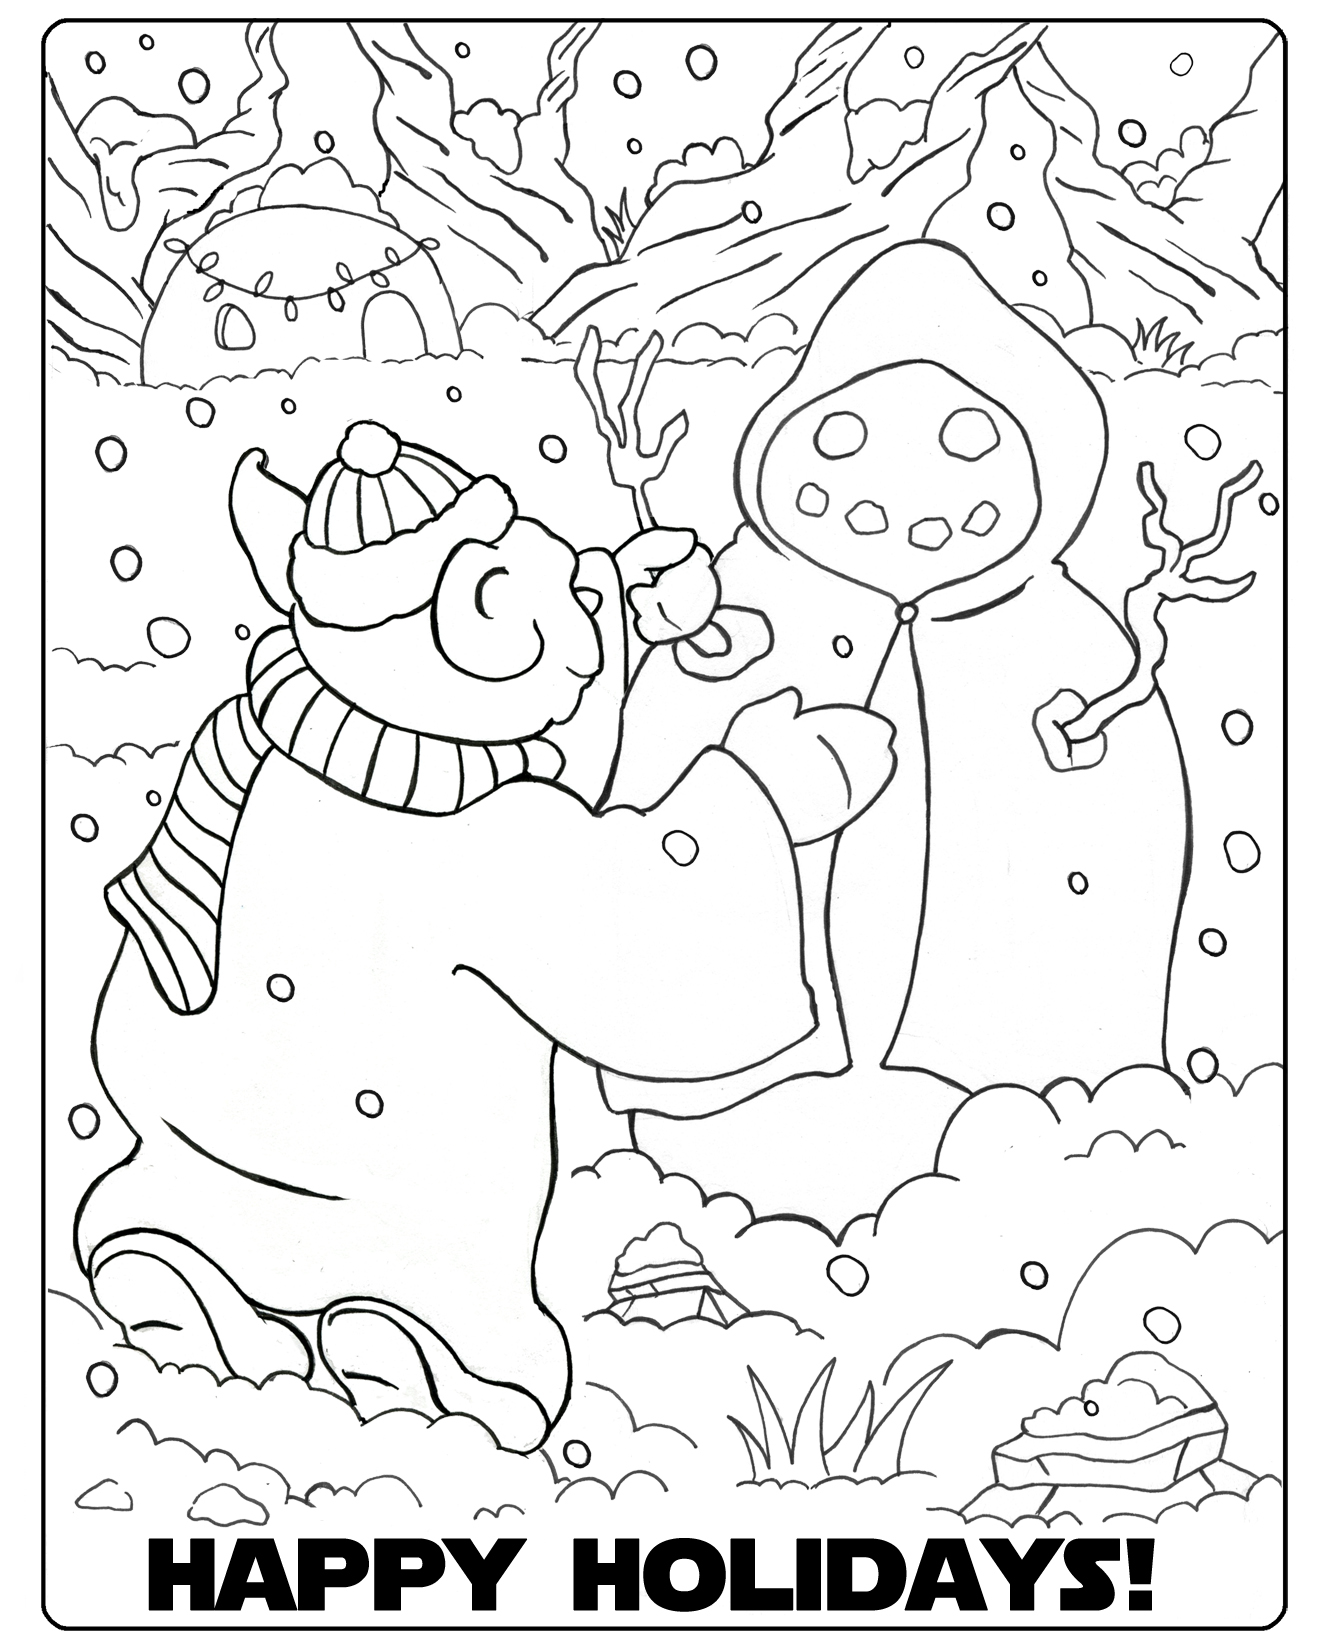 star wars christmas coloring pages star wars christmas color pictures to pin on pinterest